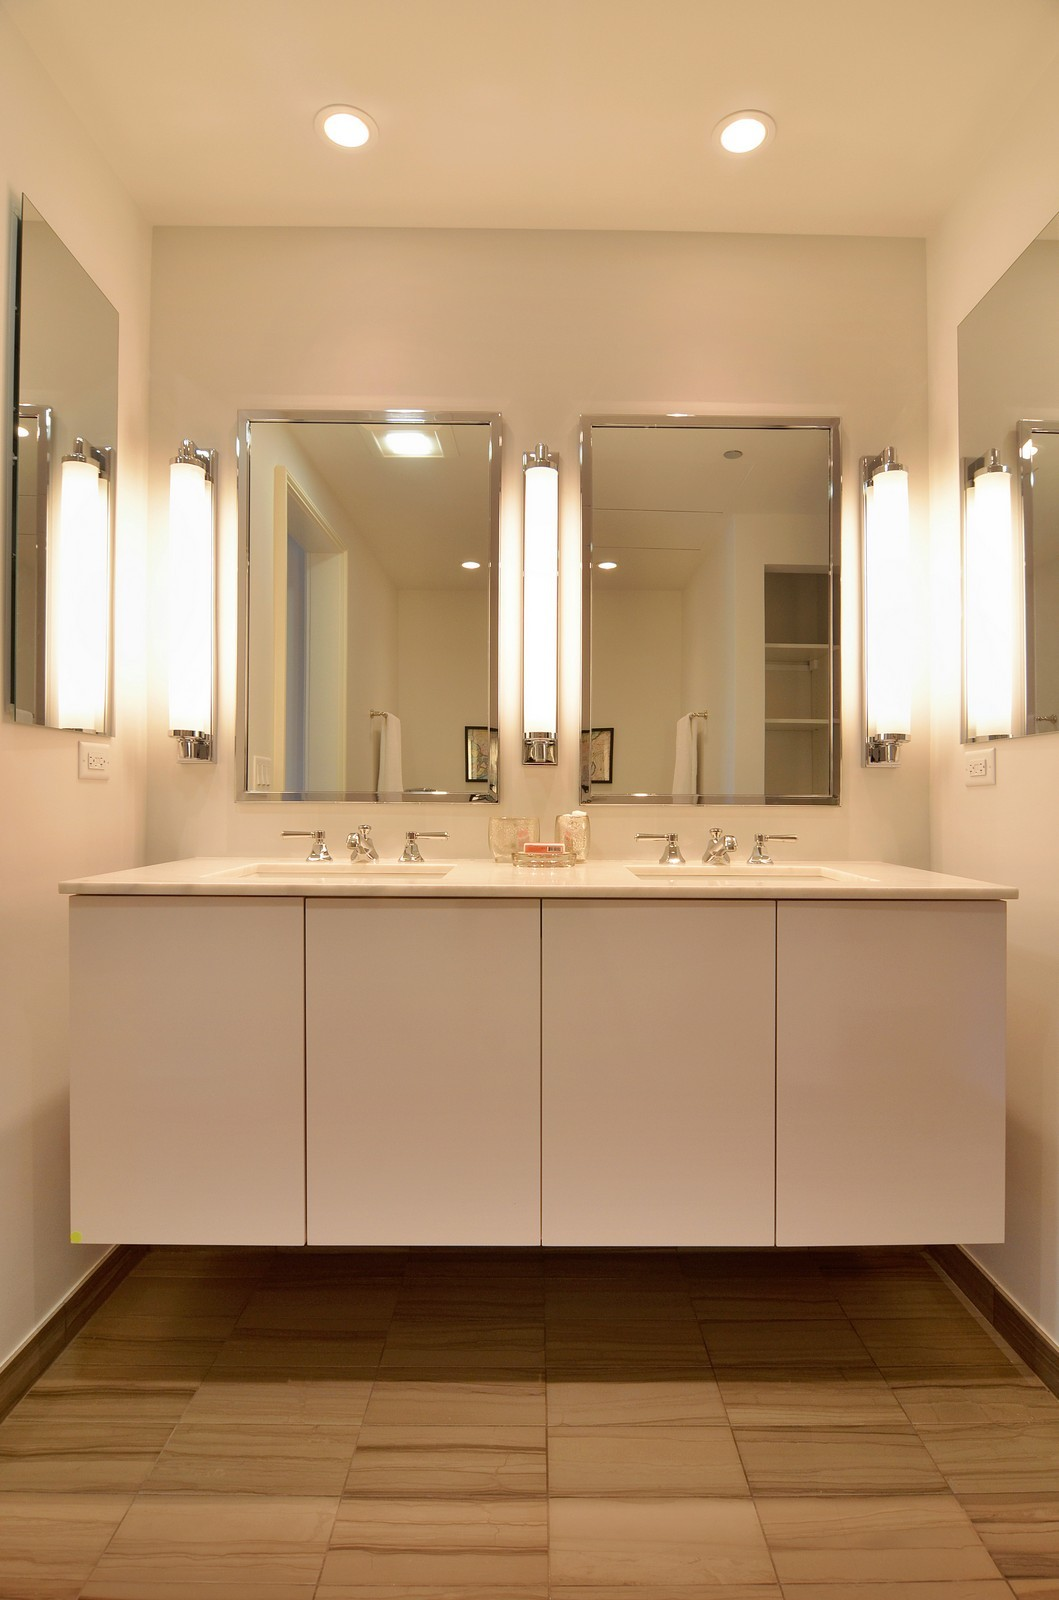 Real Estate Photography - 318 S Michigan Ave, Unit 300, Chicago, IL, 60604 - Master Bathroom